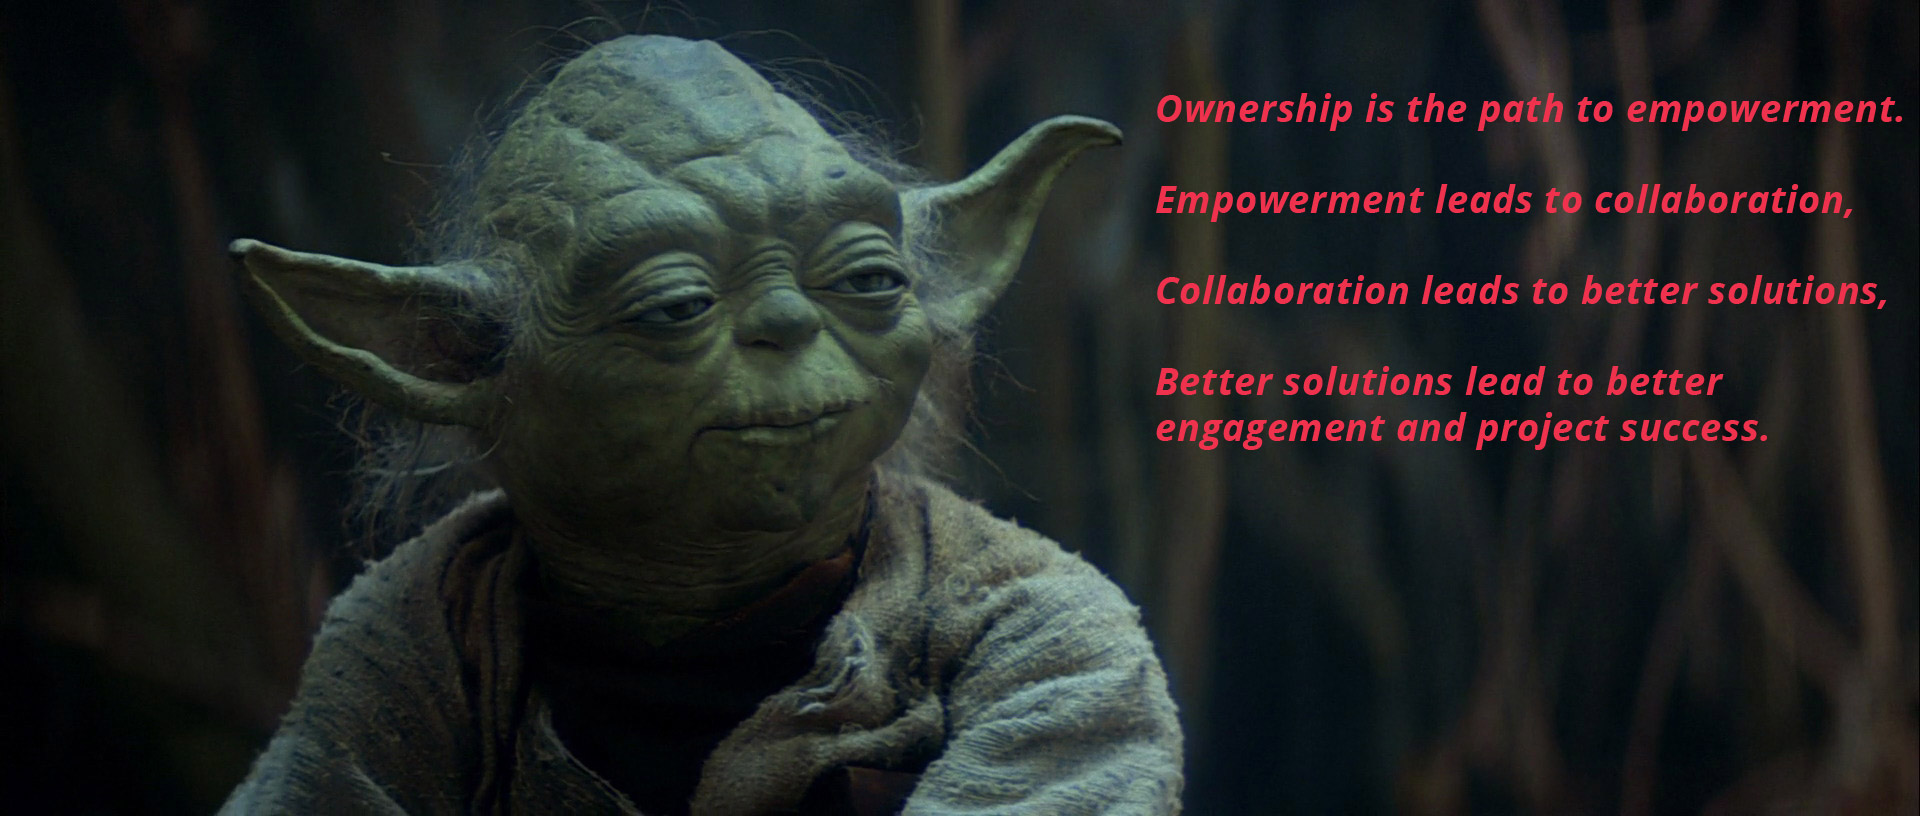 Blog-Image-Ownership-Yoda2